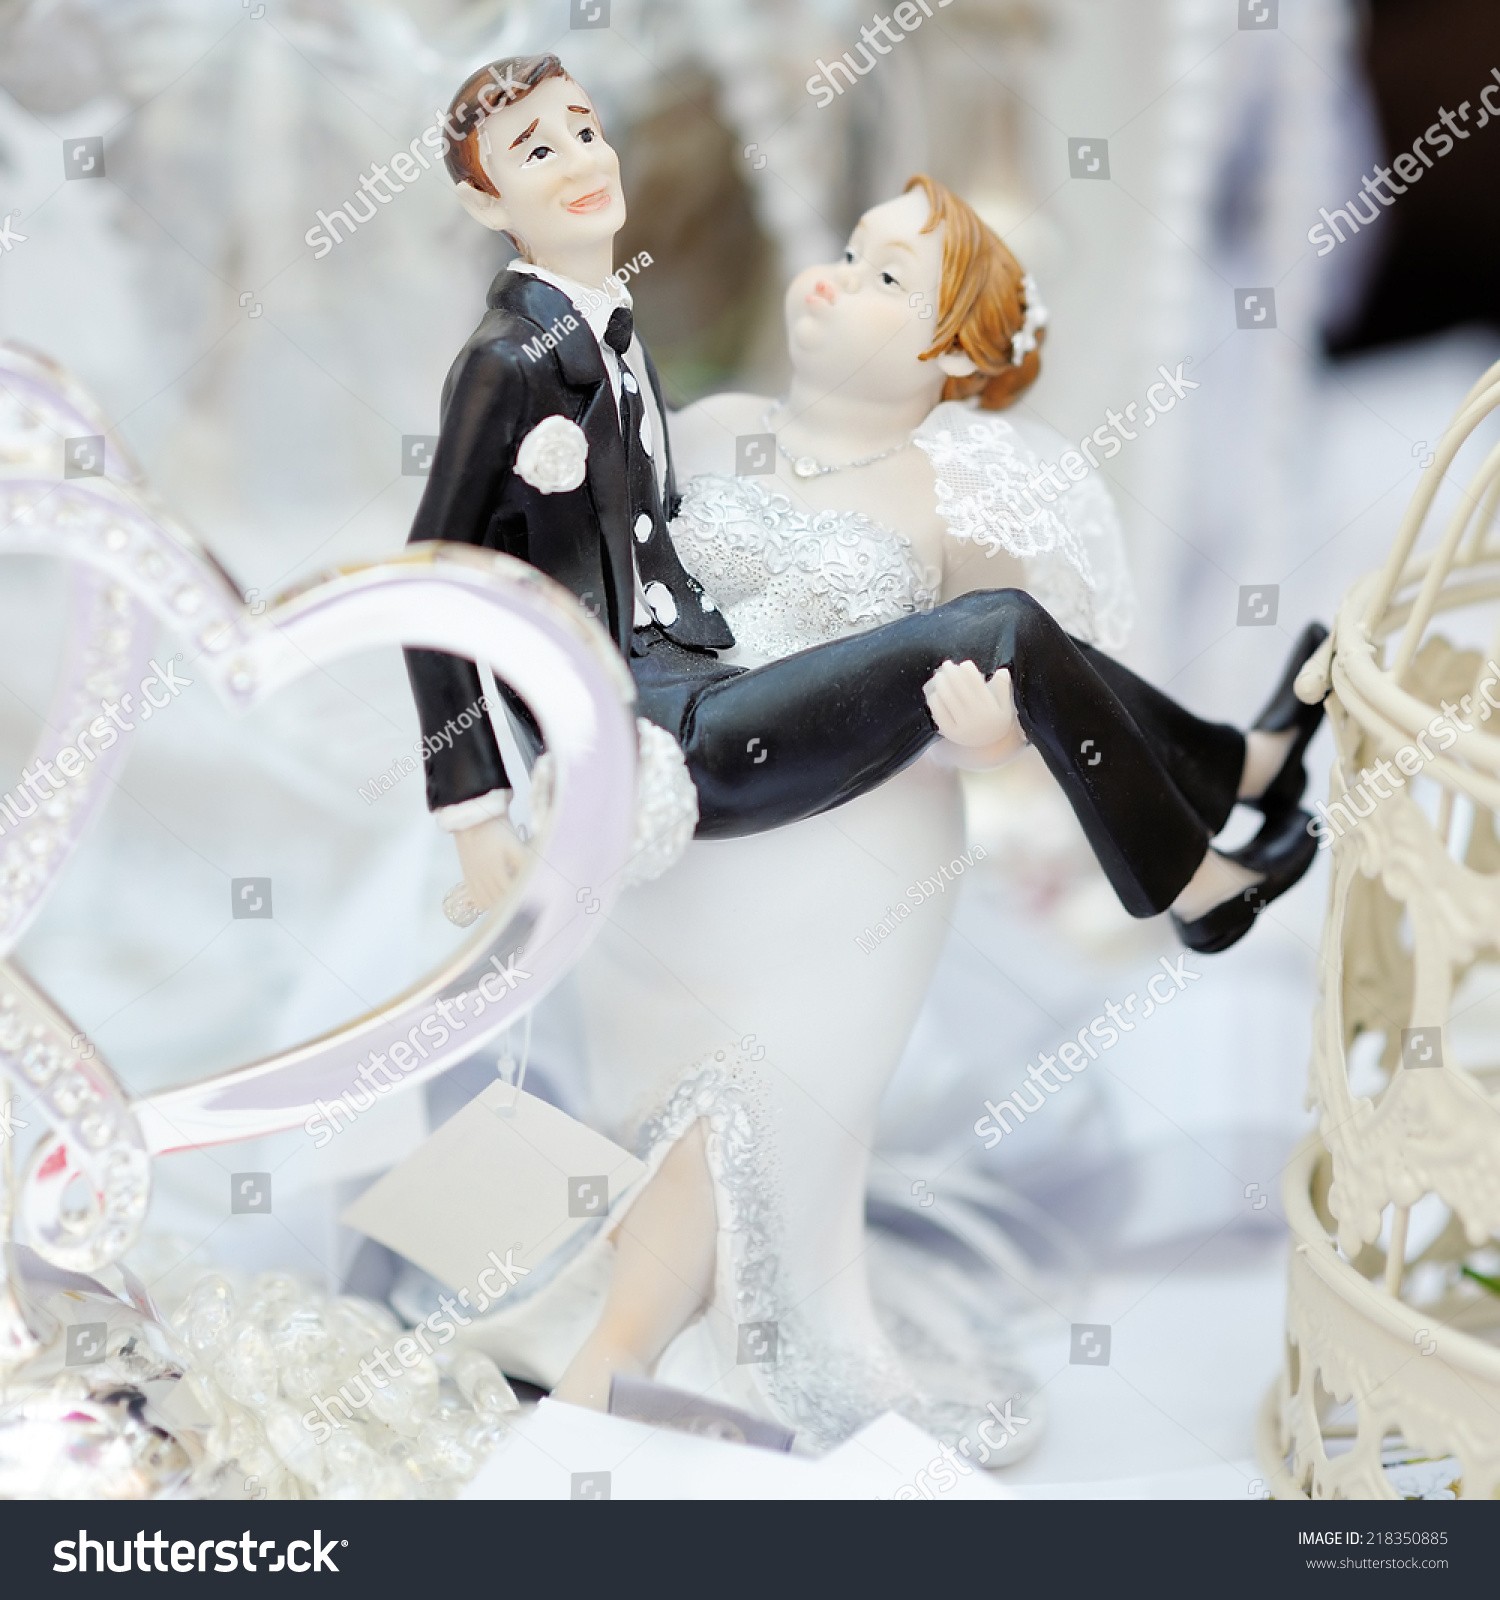 Funny Figurines Bride Groom On Top Stock Photo & Image (Royalty-Free ...